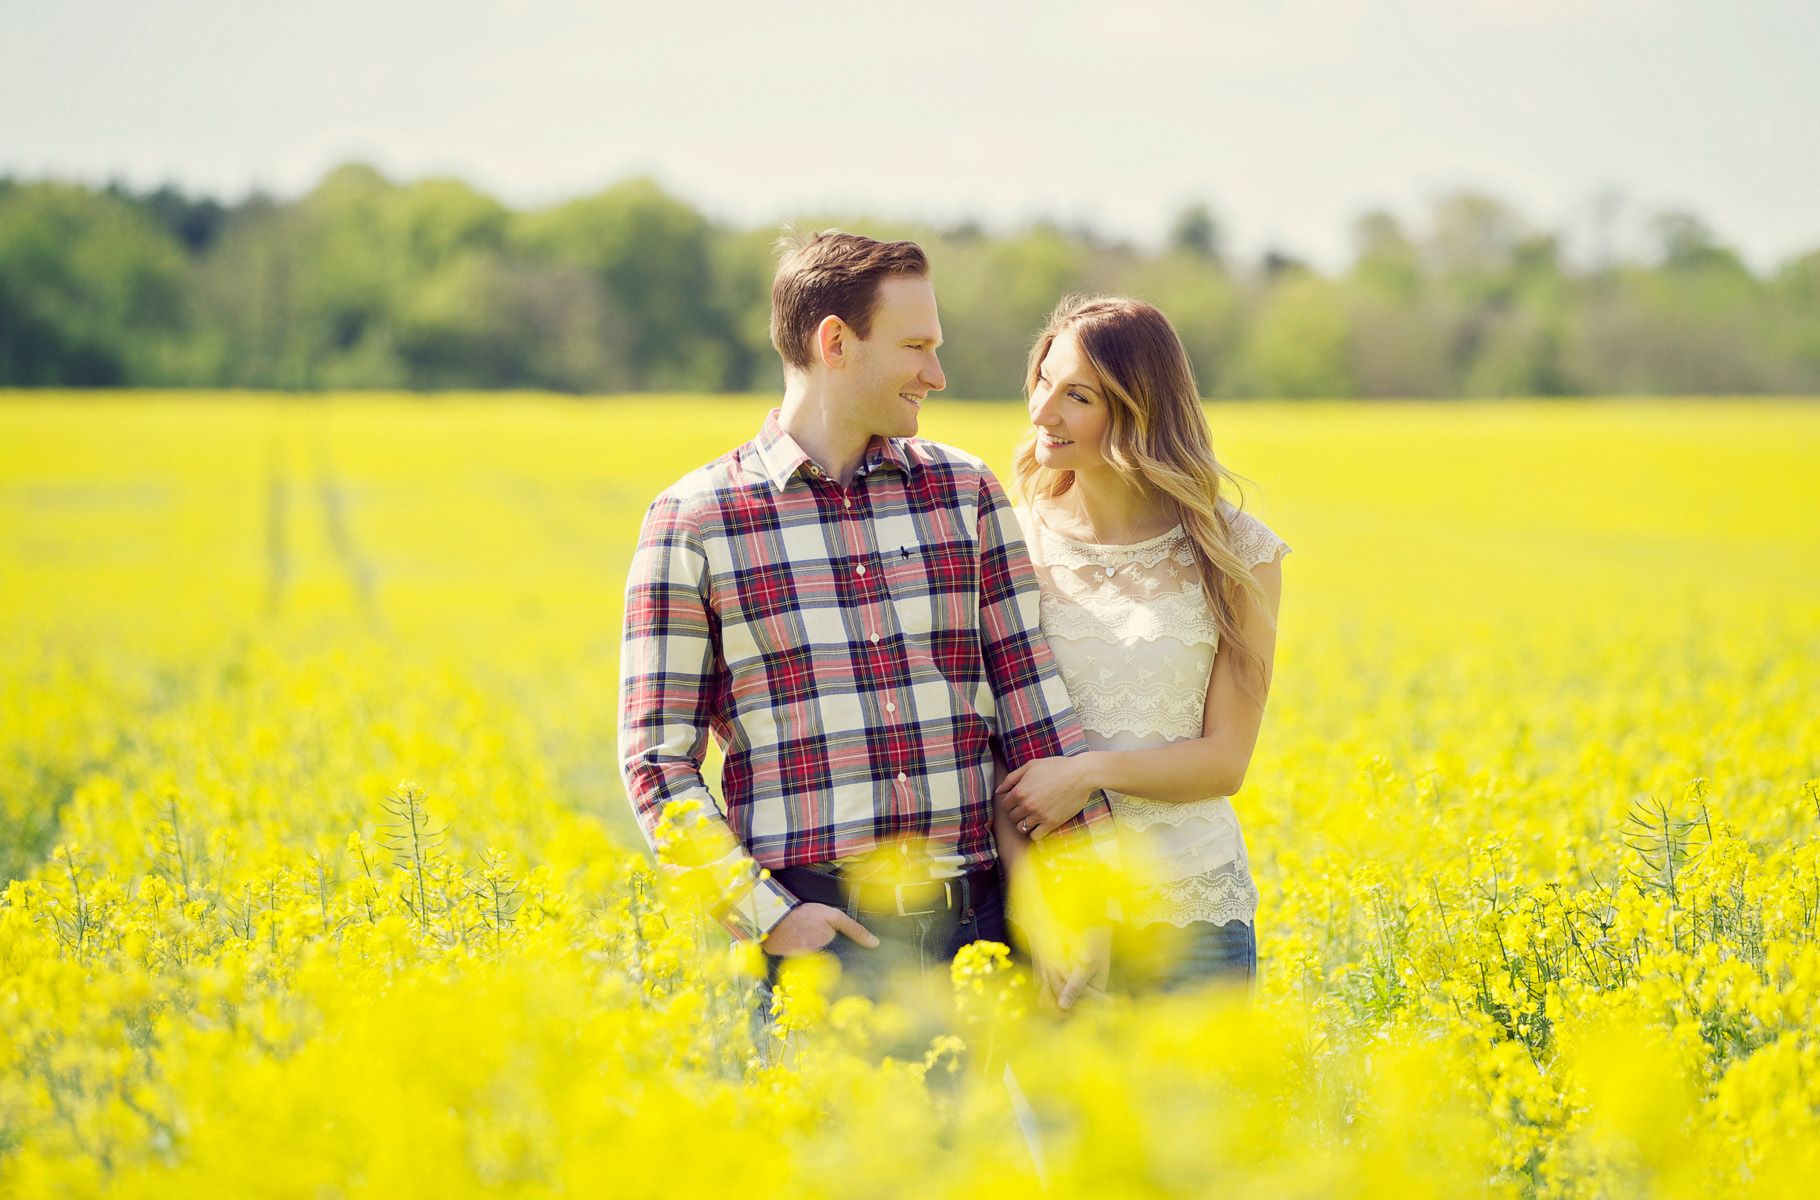 Engagement-Love-Photographer-Winchester-Hampshire-1